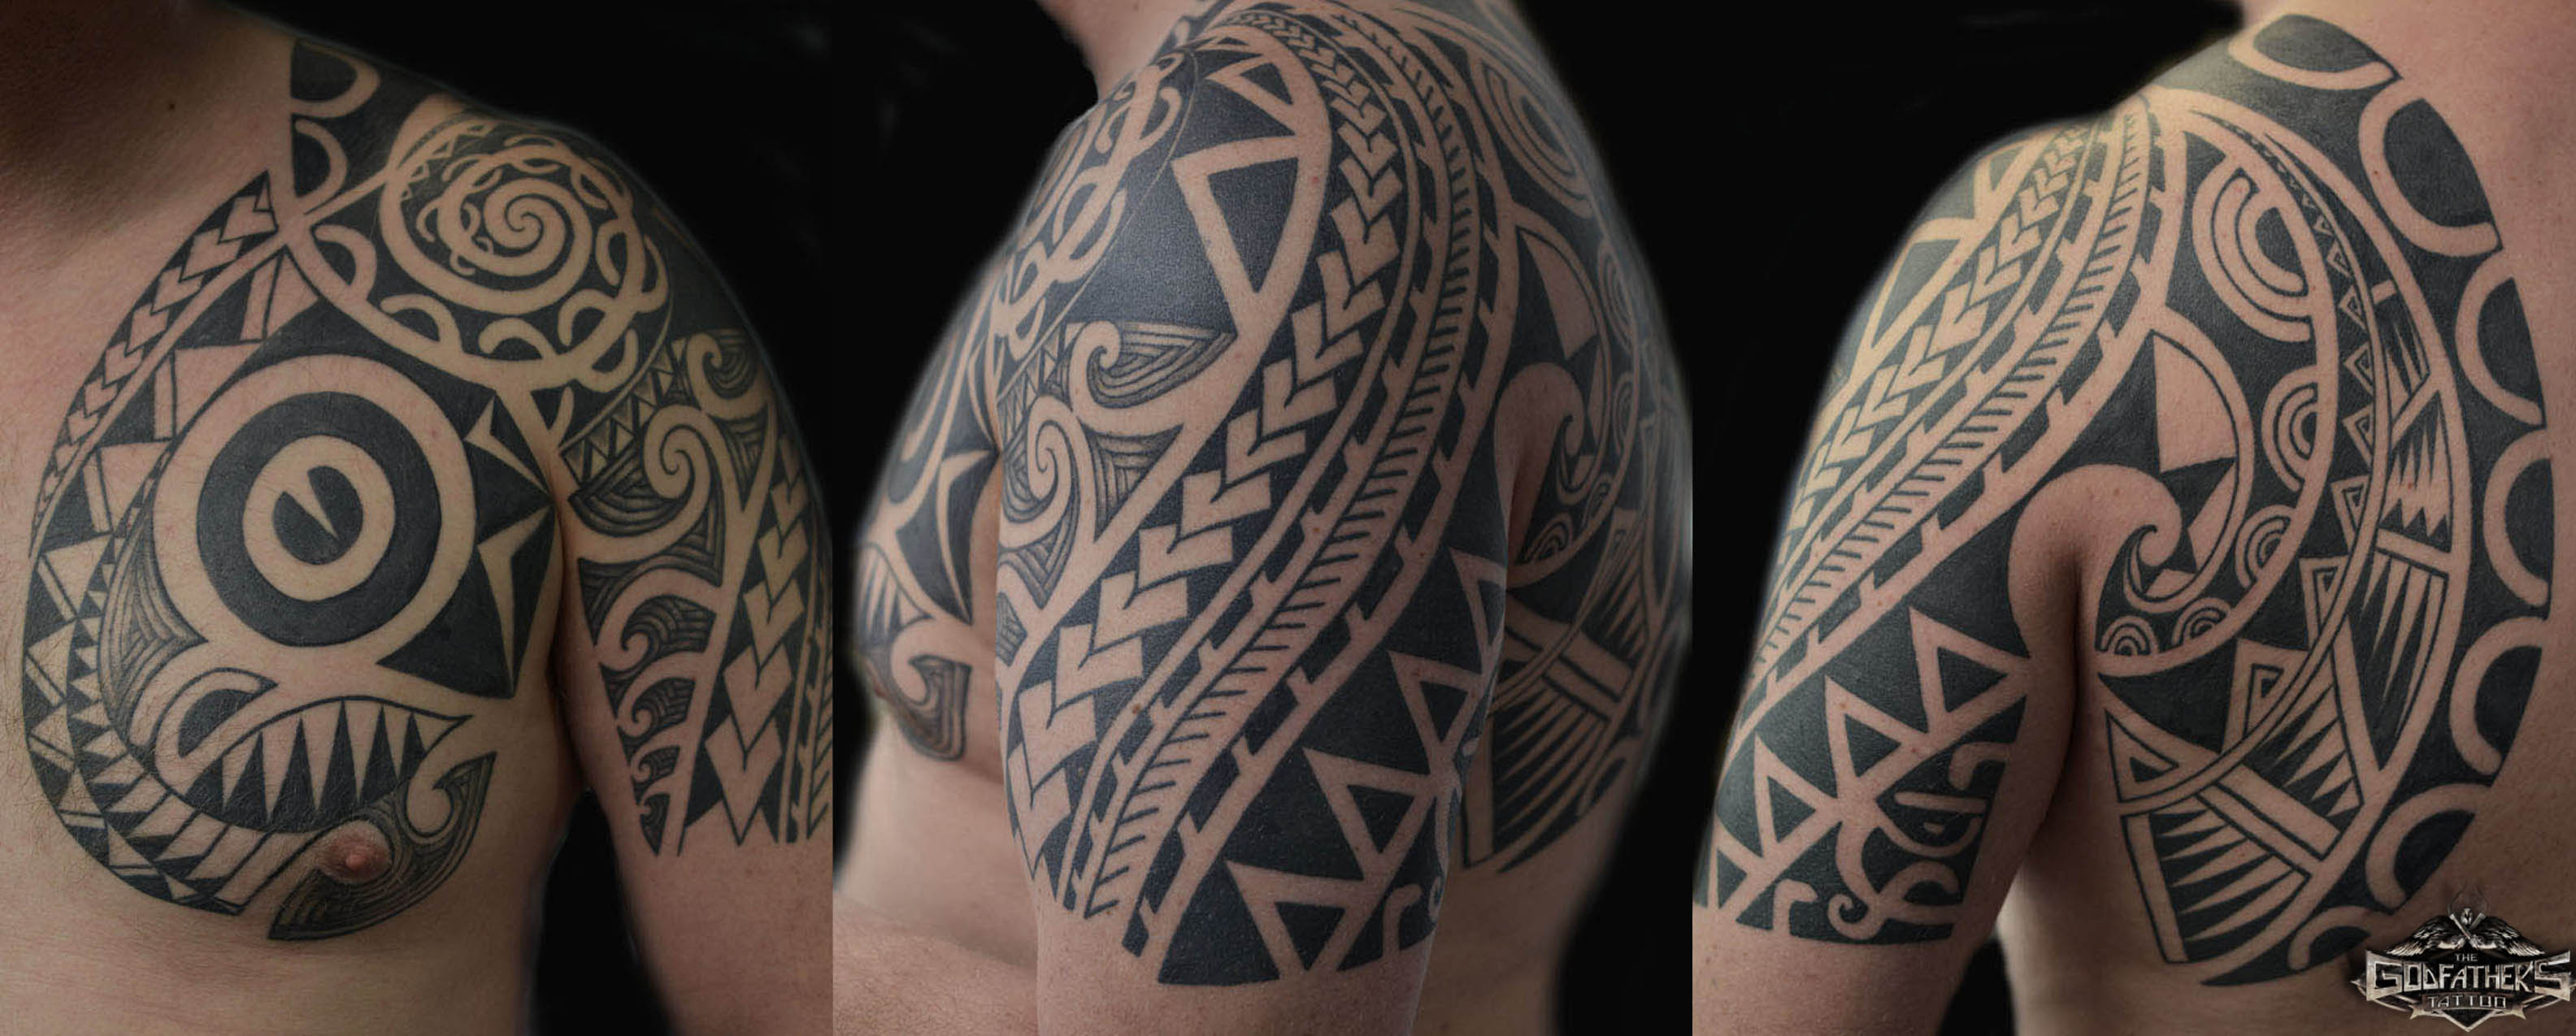 MaoriBlack WorksMandala  Gallery of our tattoos in MaoriBlack